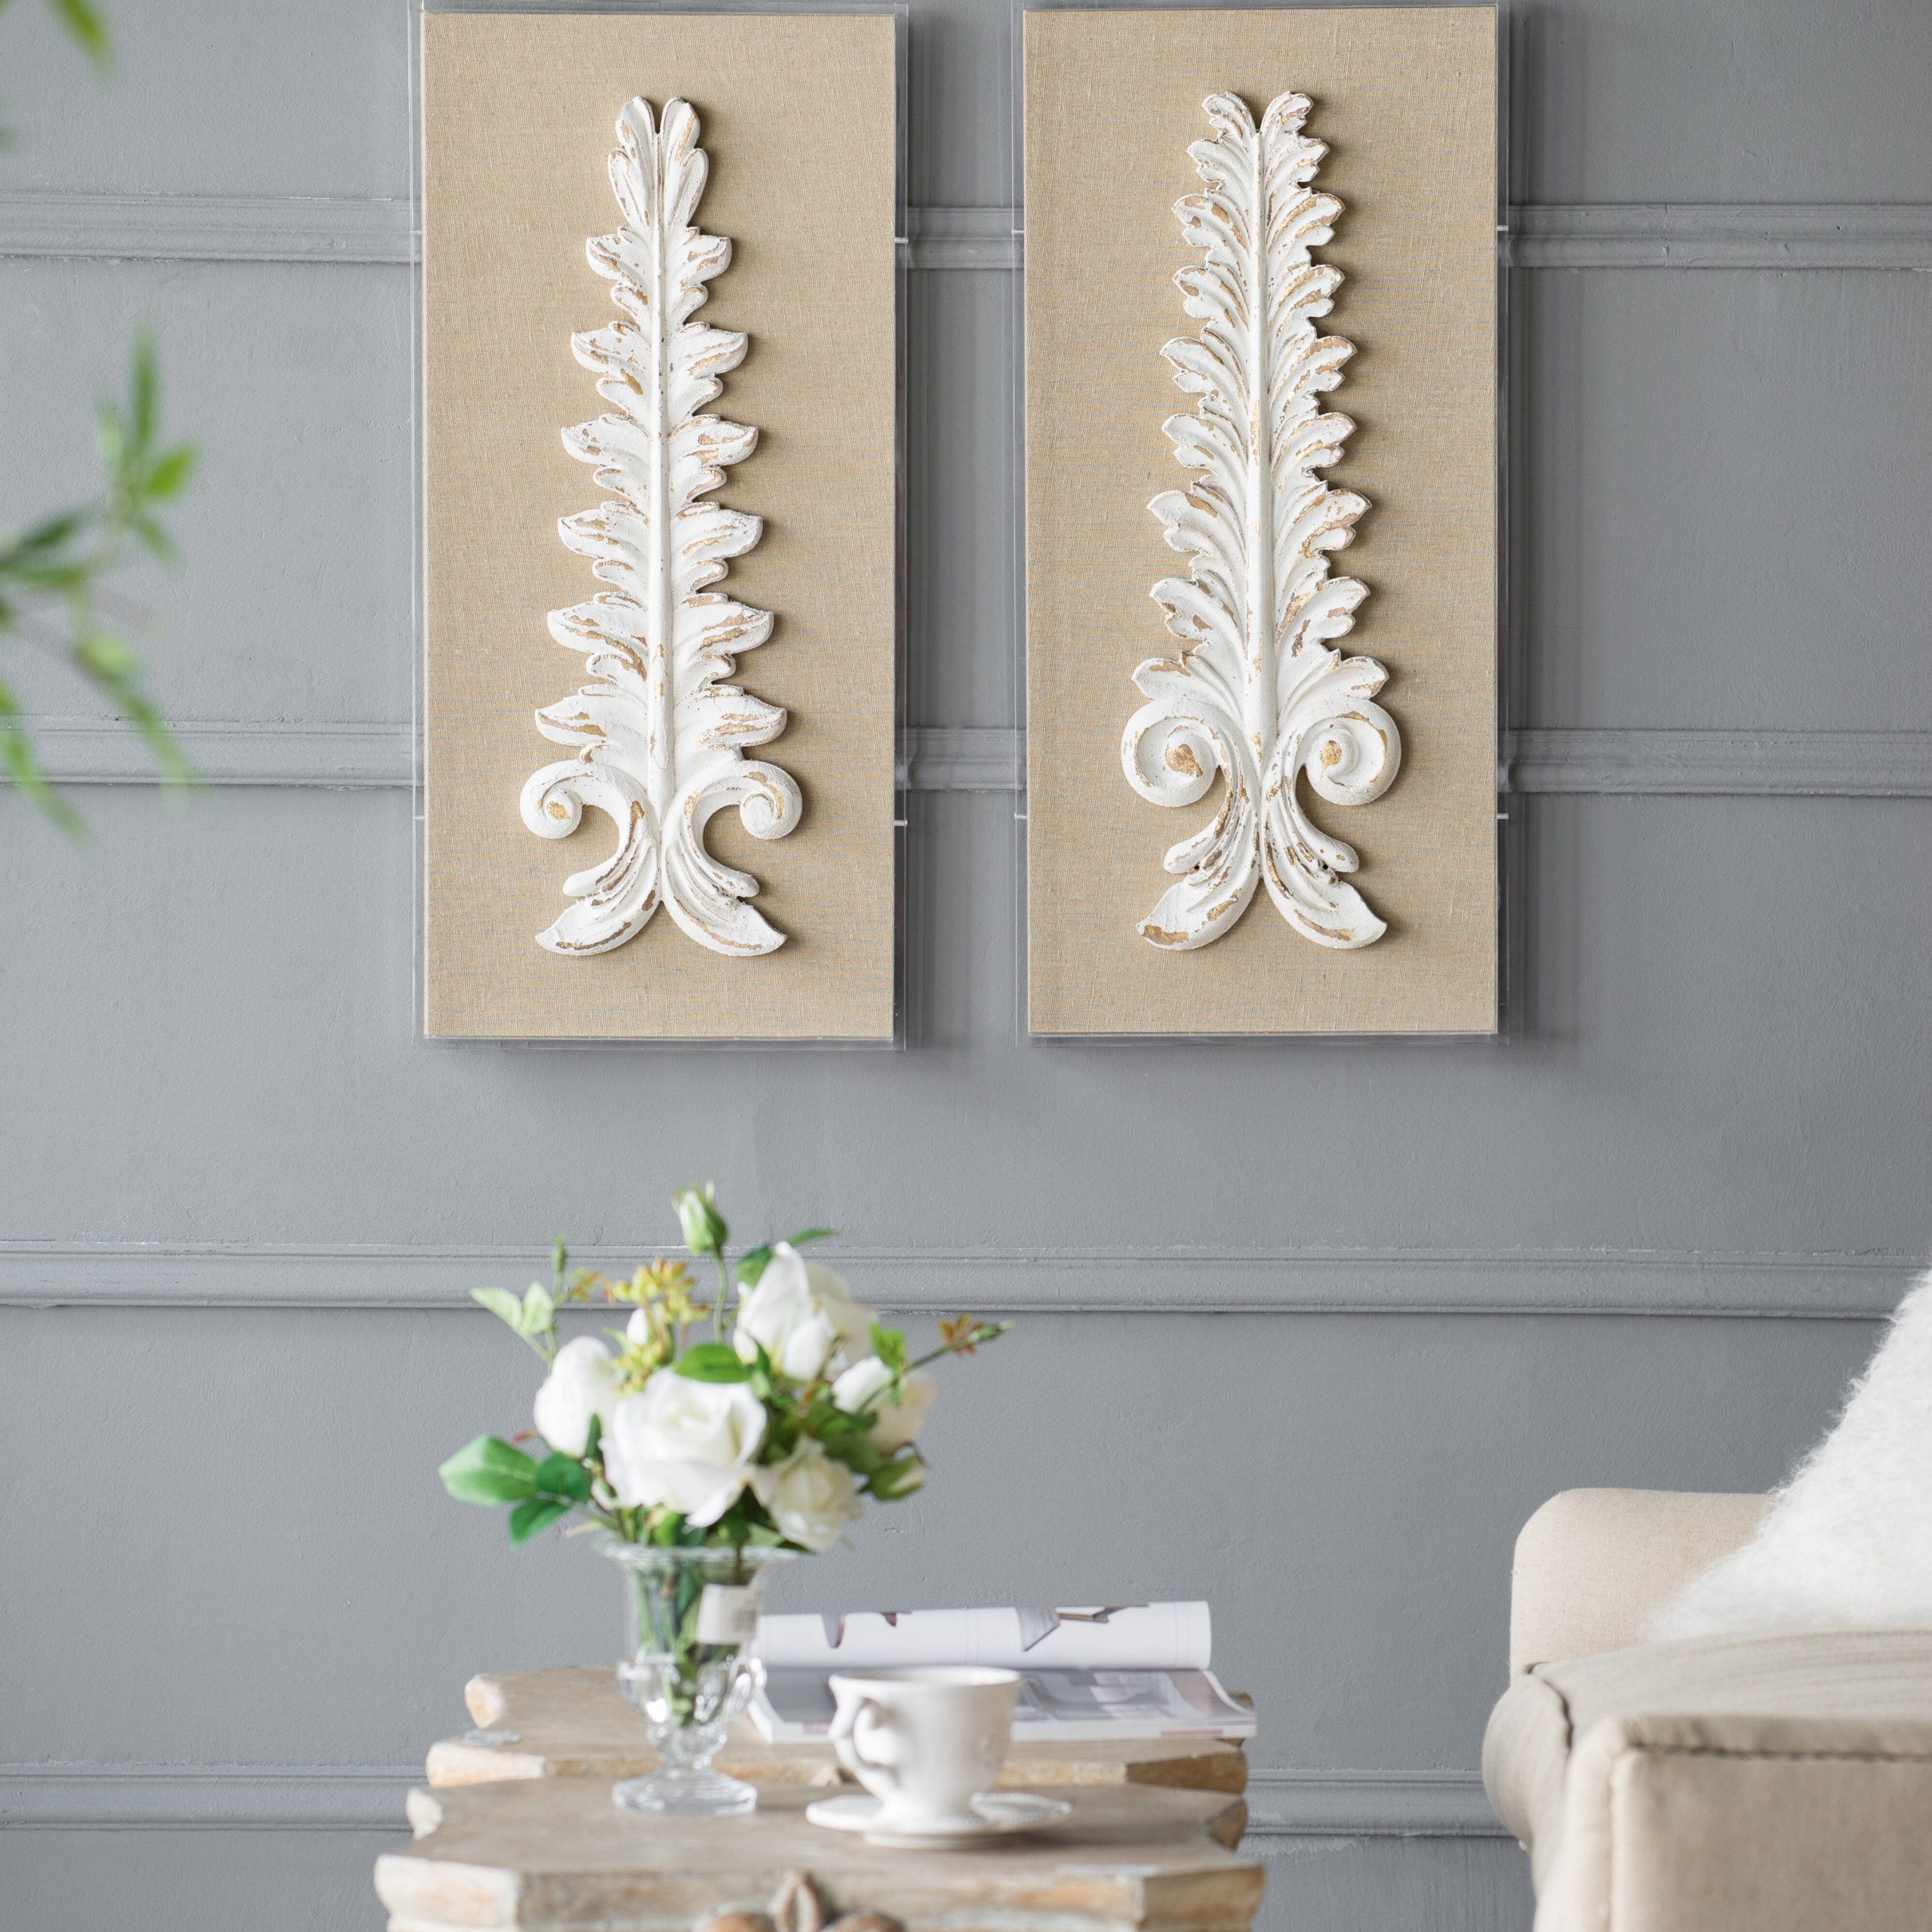 2 Piece Wall Décor Set Within Most Recently Released Wing Wall Décor By One Allium Way (View 12 of 20)